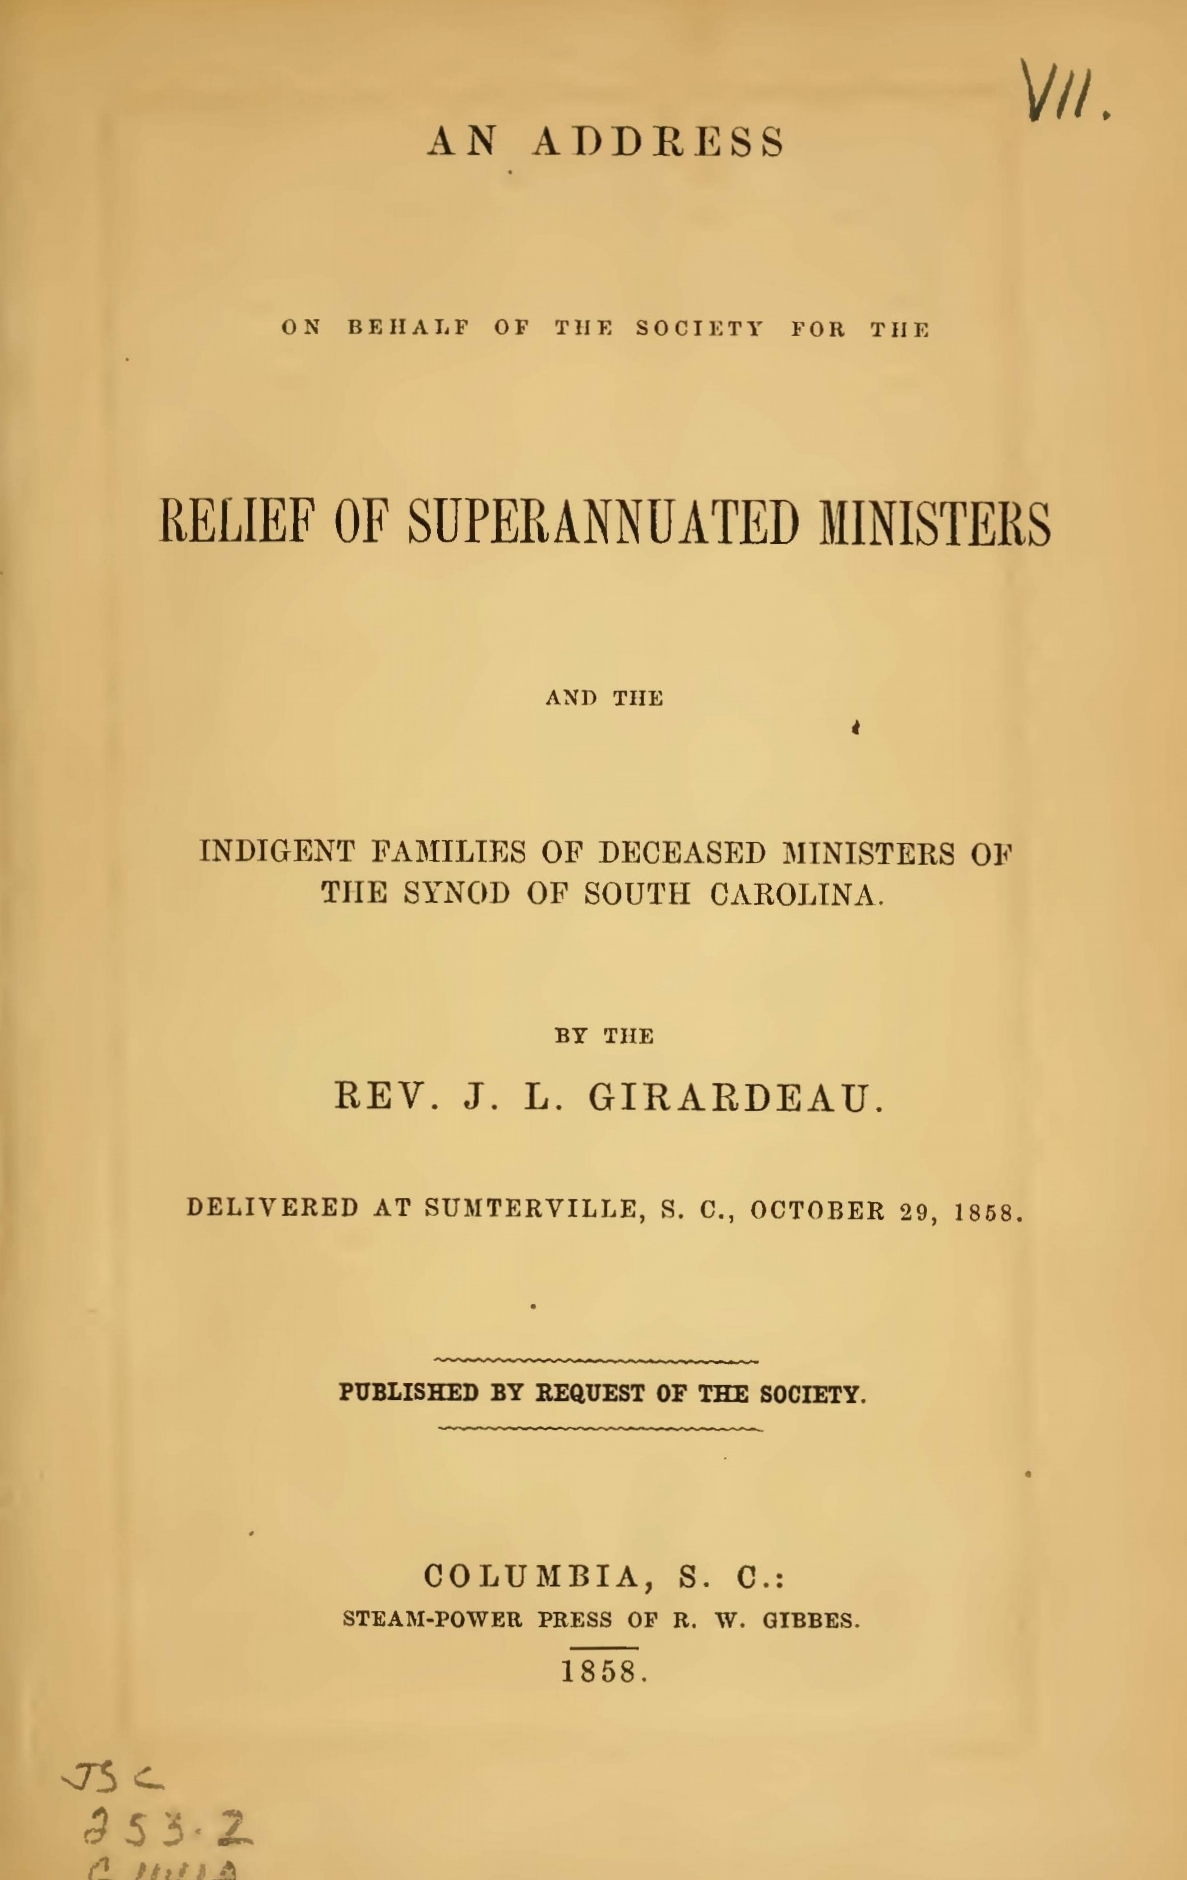 Girardeau, John Lafayette, An Address on Behalf of the Society for the Relief of Superannuated Ministers Title Page.jpg